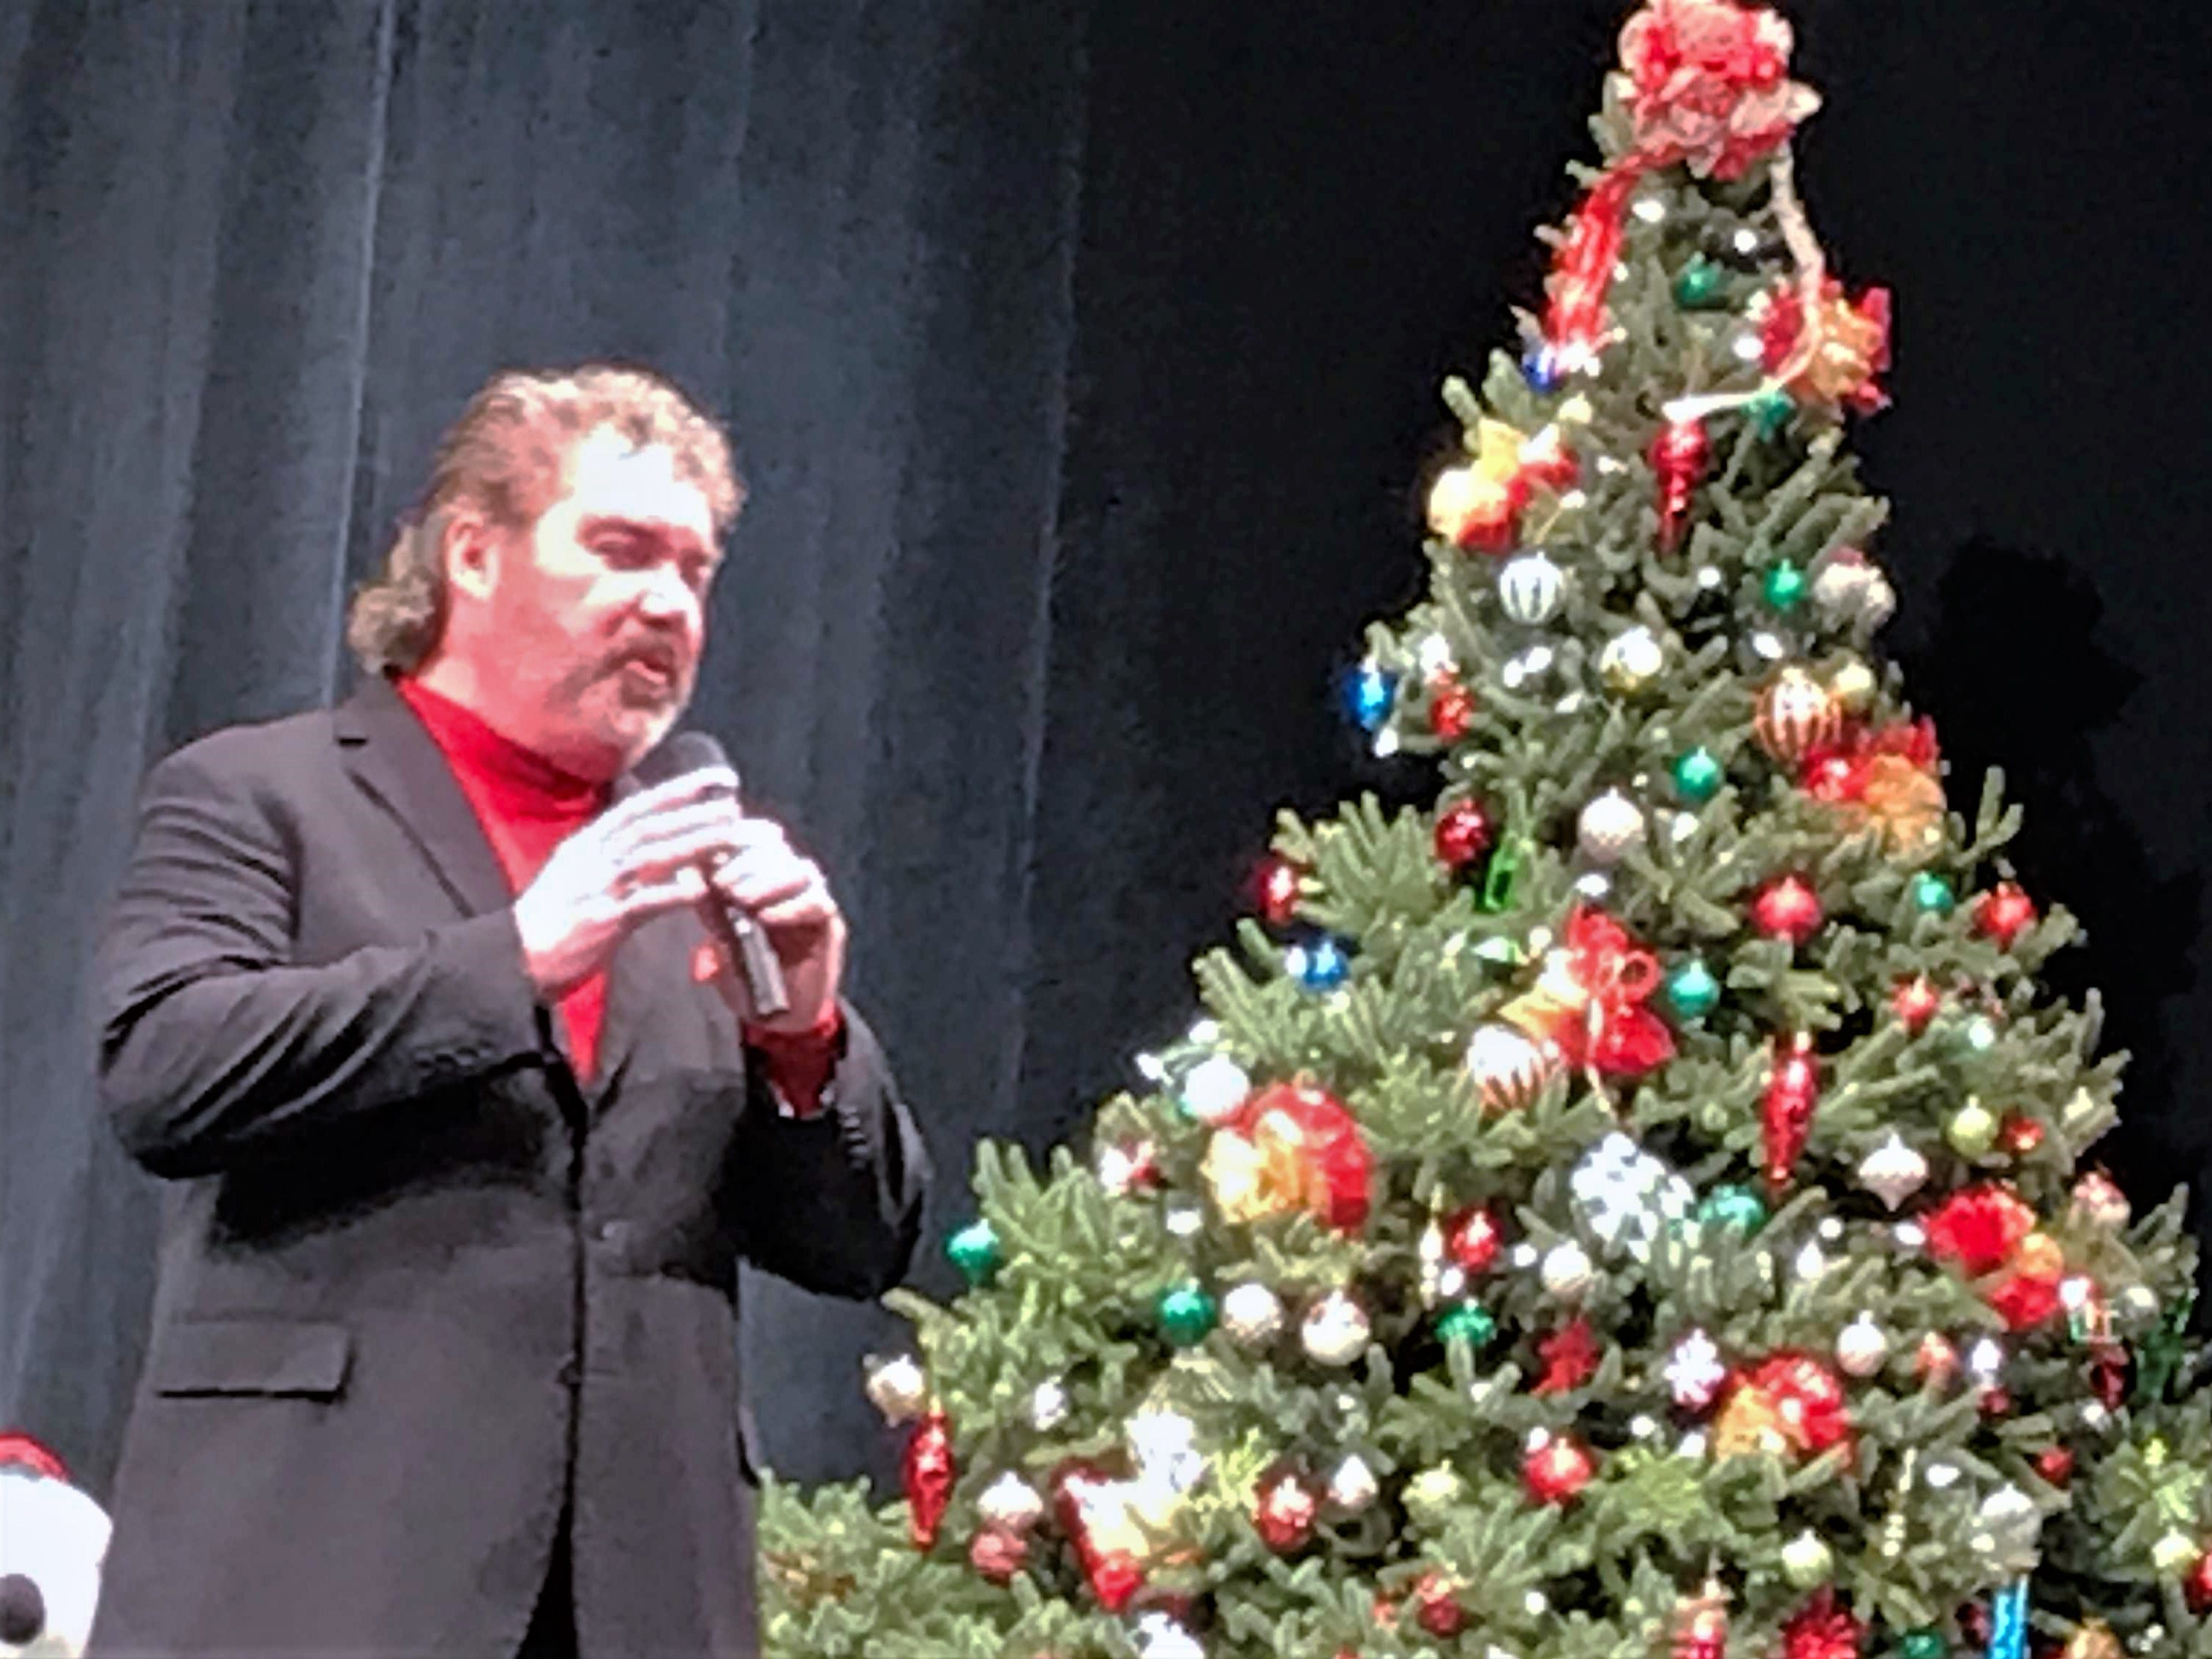 Tenor Mike Burrell sings a Christmas song during Sunday's annual Arctic League broadcast.